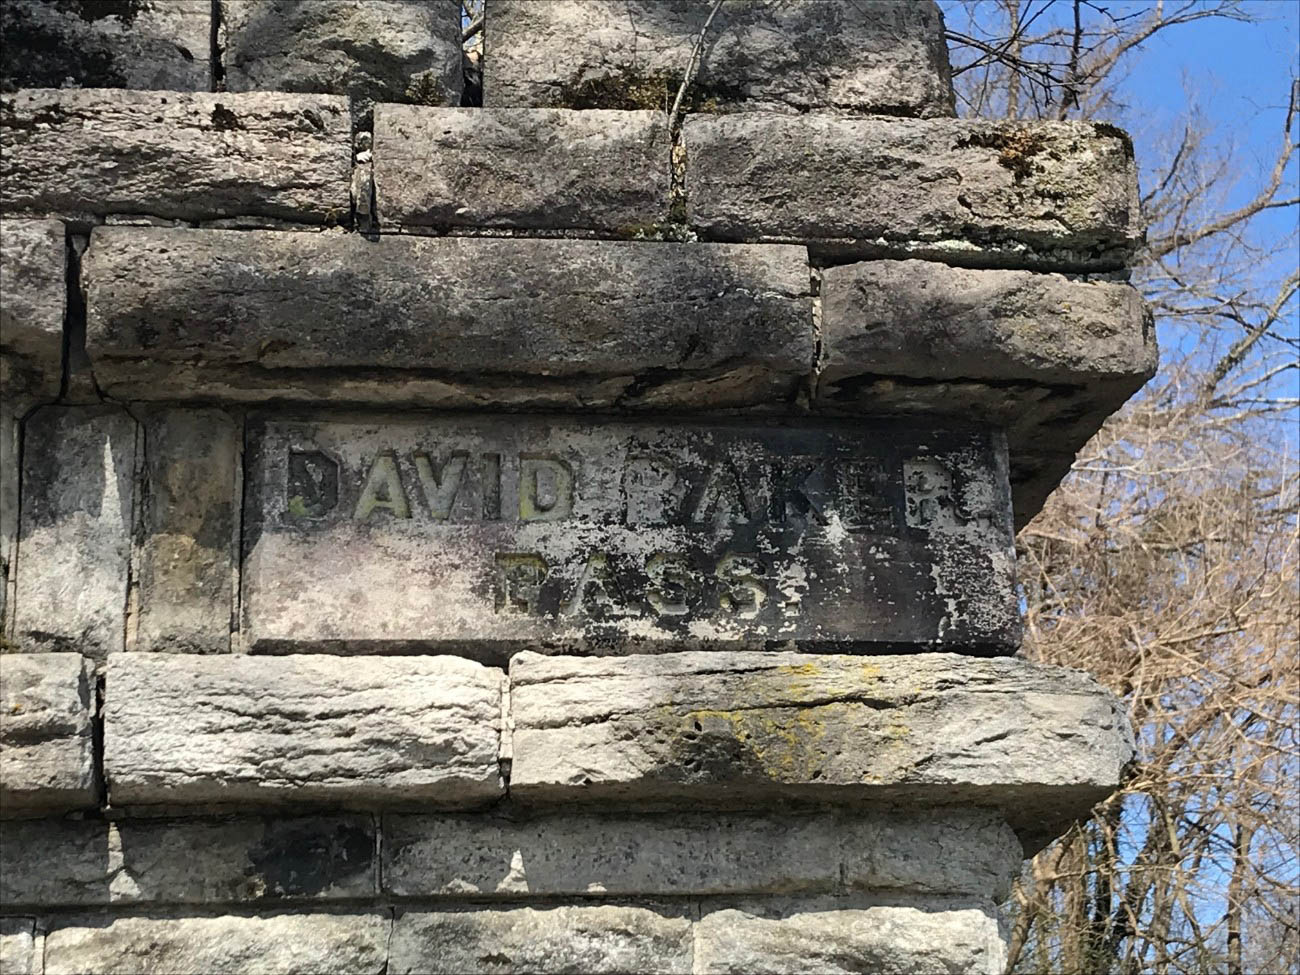 What is now Martin Drive was once called Baker's Pass—a brick road intended for carriages that ran atop the retaining wall. It was named after David Baker, the public official who encouraged the reservoir project. / Image: Amy Bauer // Published: 4.12.19